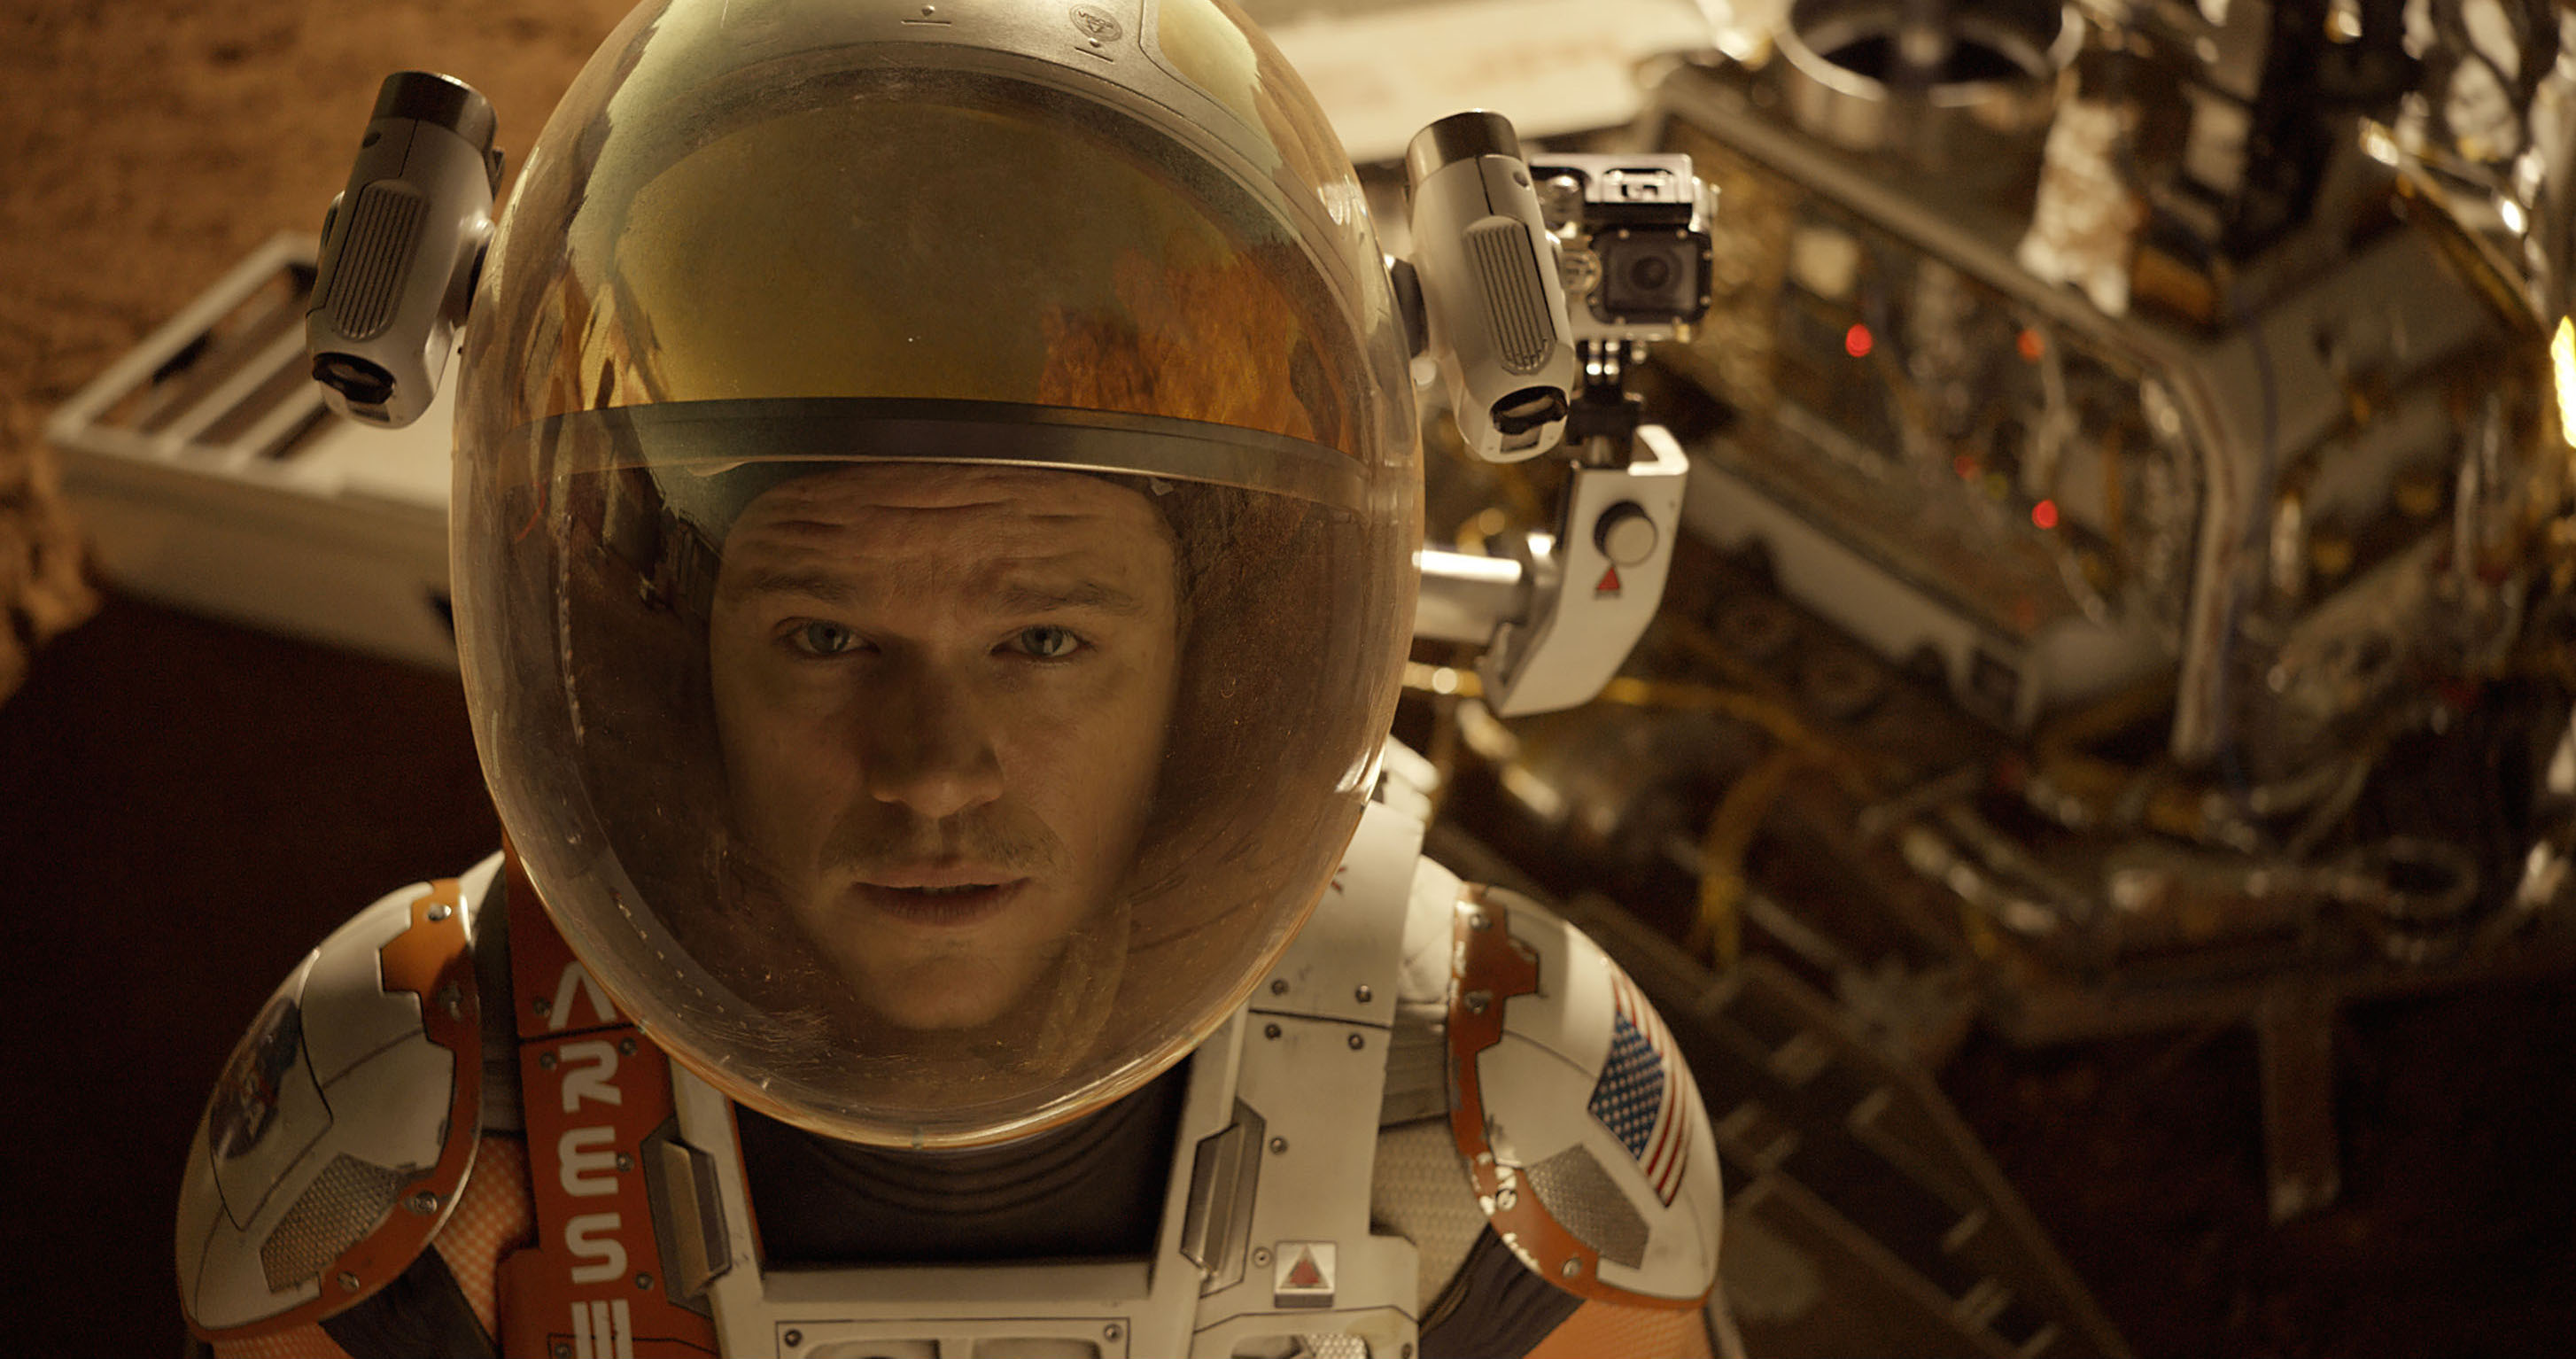 Matt Damon worries that science doesn't have all the answers.